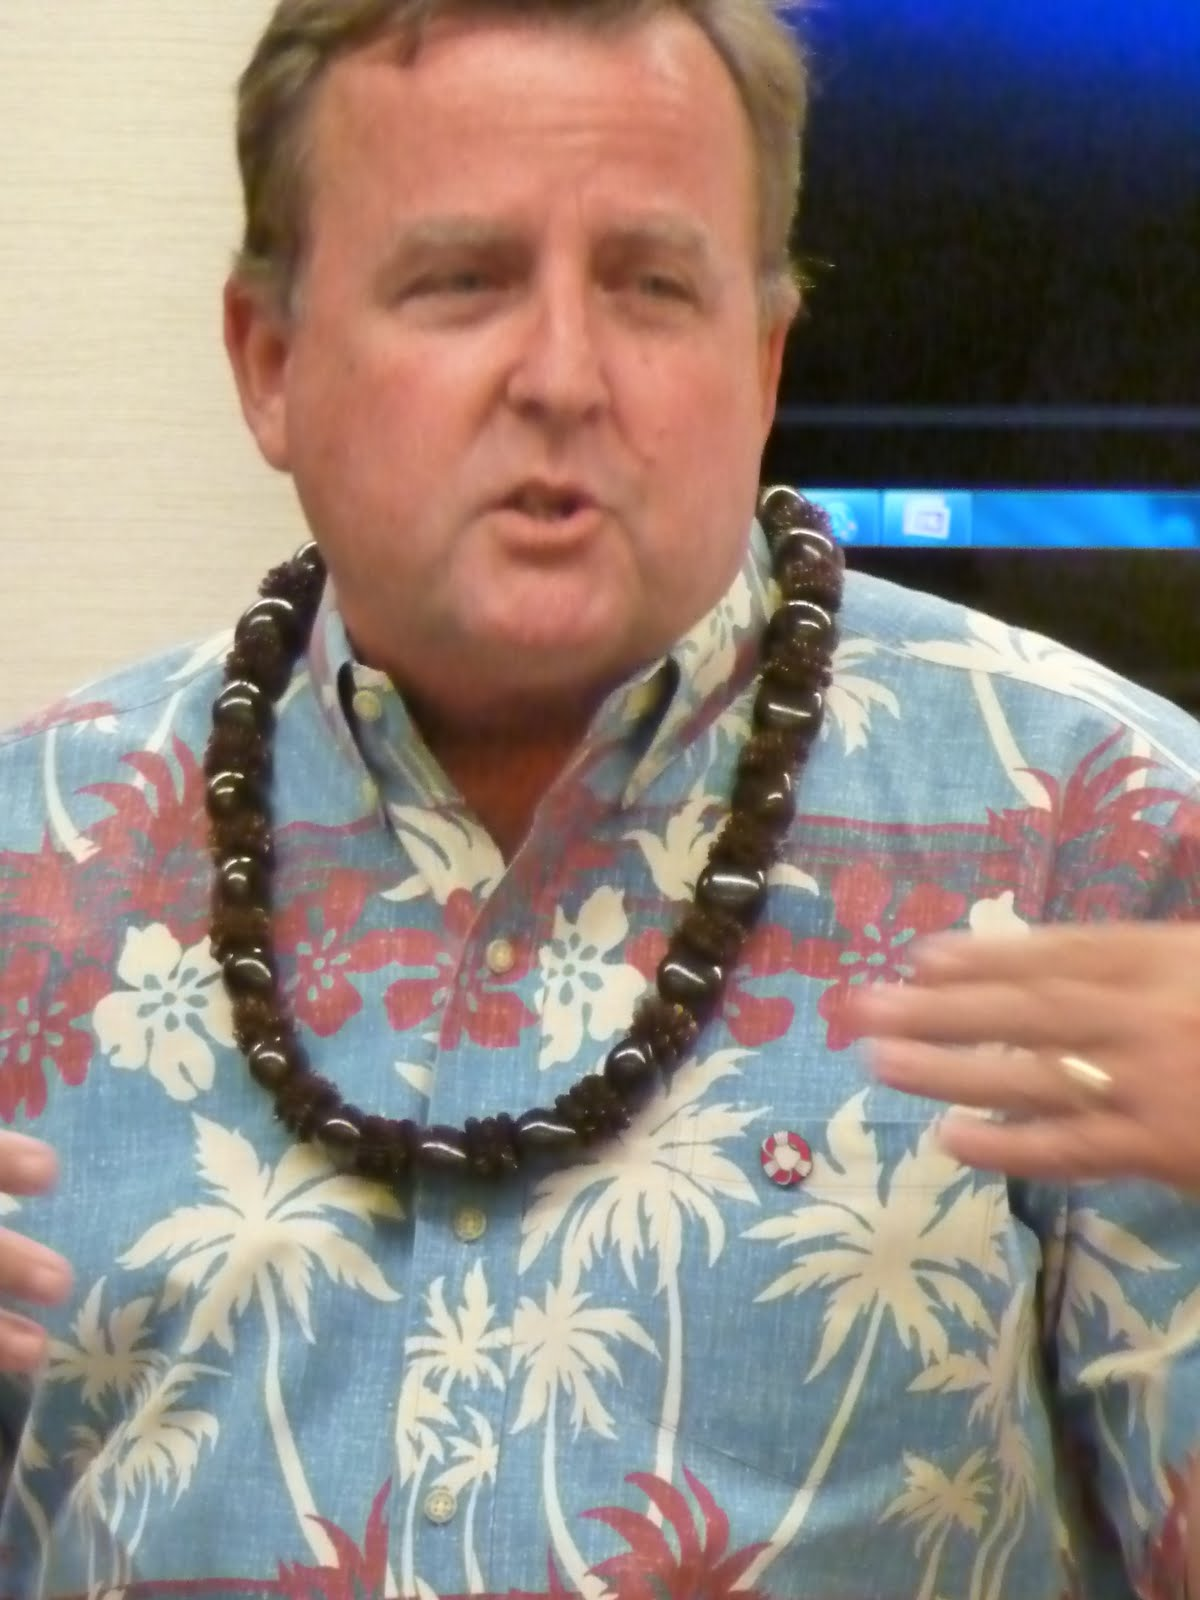 ... of the Hawaii state senate and candidate for Hawaii lieutenant governor.